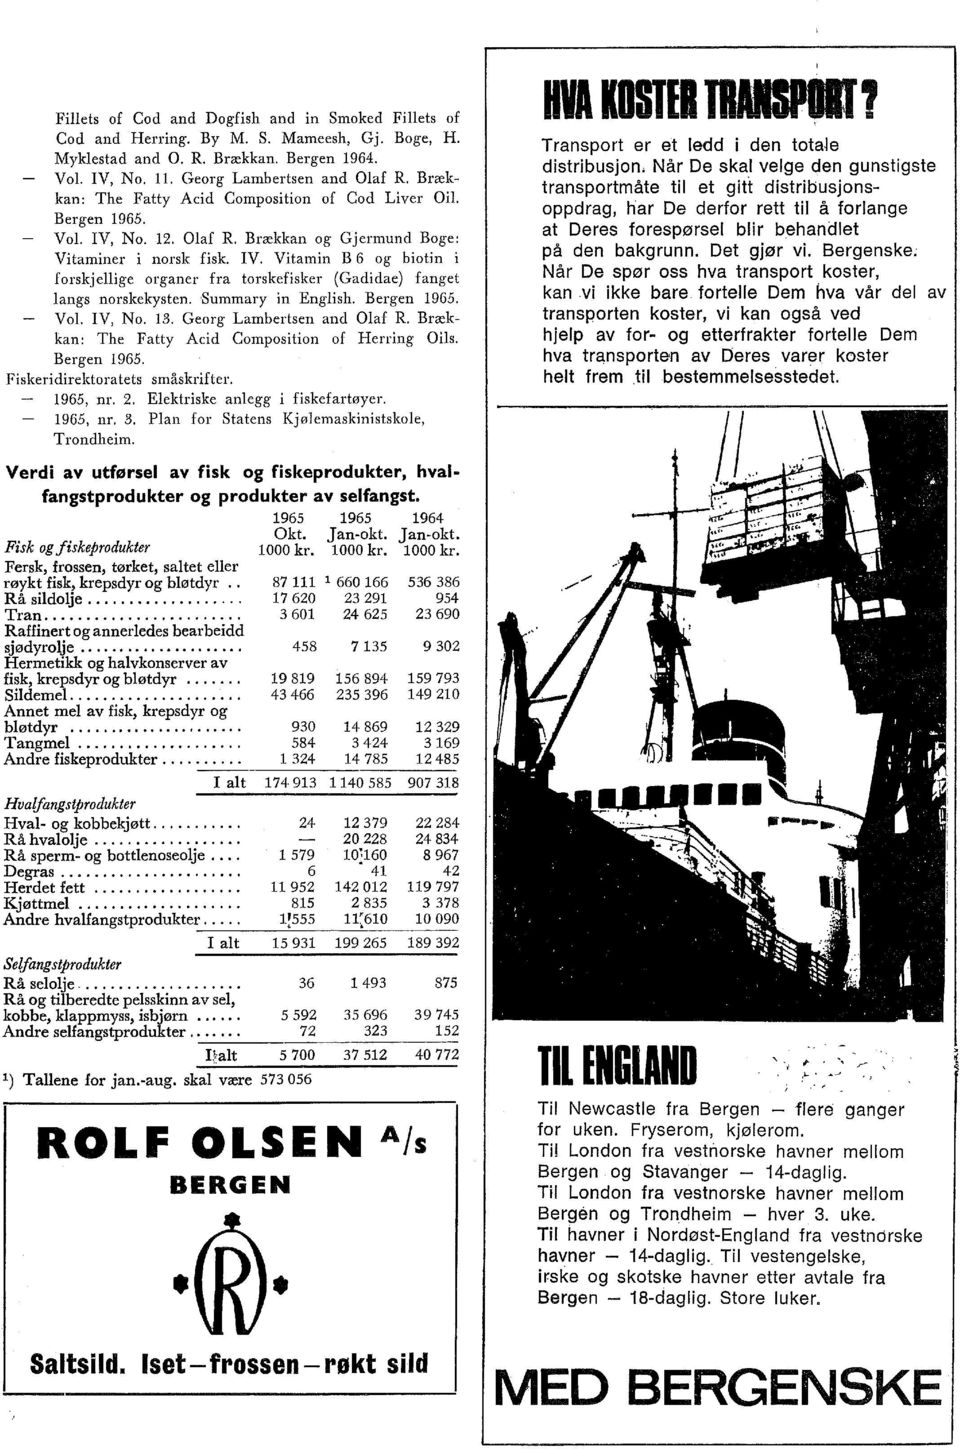 Summary in Engish. Bergen 1965. Vo. IV, No. 13. Georg Lambertsen and Oaf R. Brækkan: The Fatty Acid Composition of Herring Ois. Bergen 1965. Fiskeridirektoratets småskrifter. 1965, nr. 2.